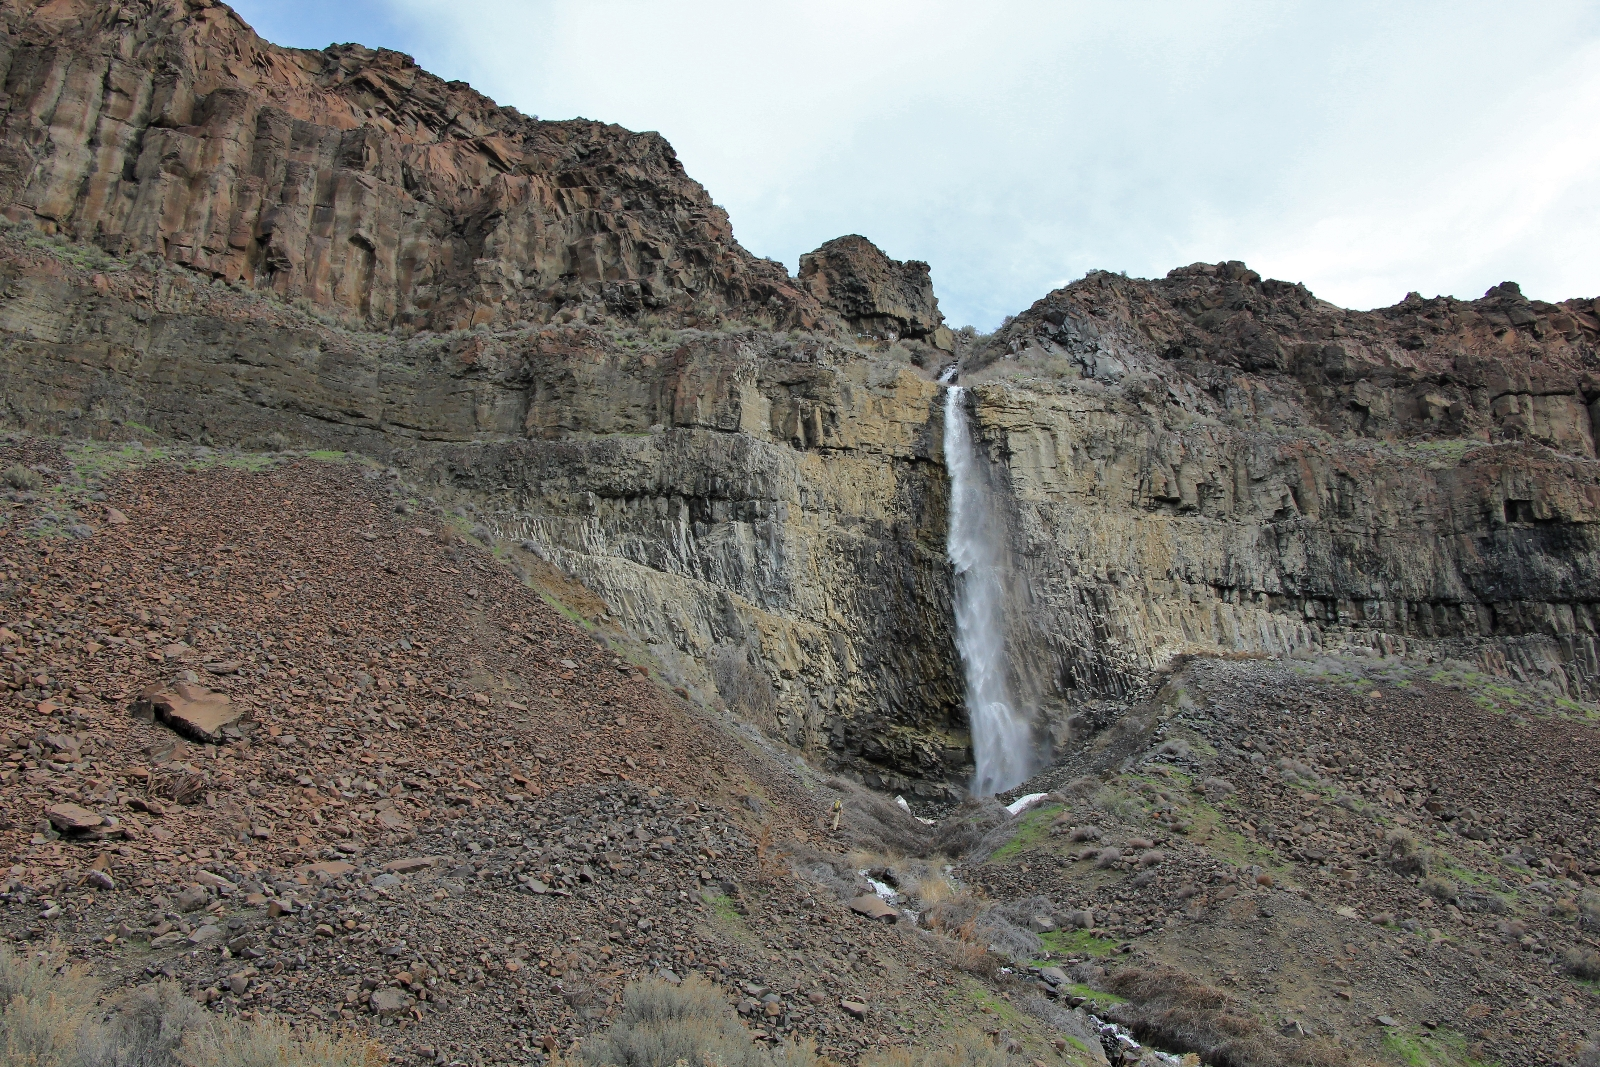 wp-content/uploads/itineraries/USA/WaState/frenchman-coulee-2.jpg